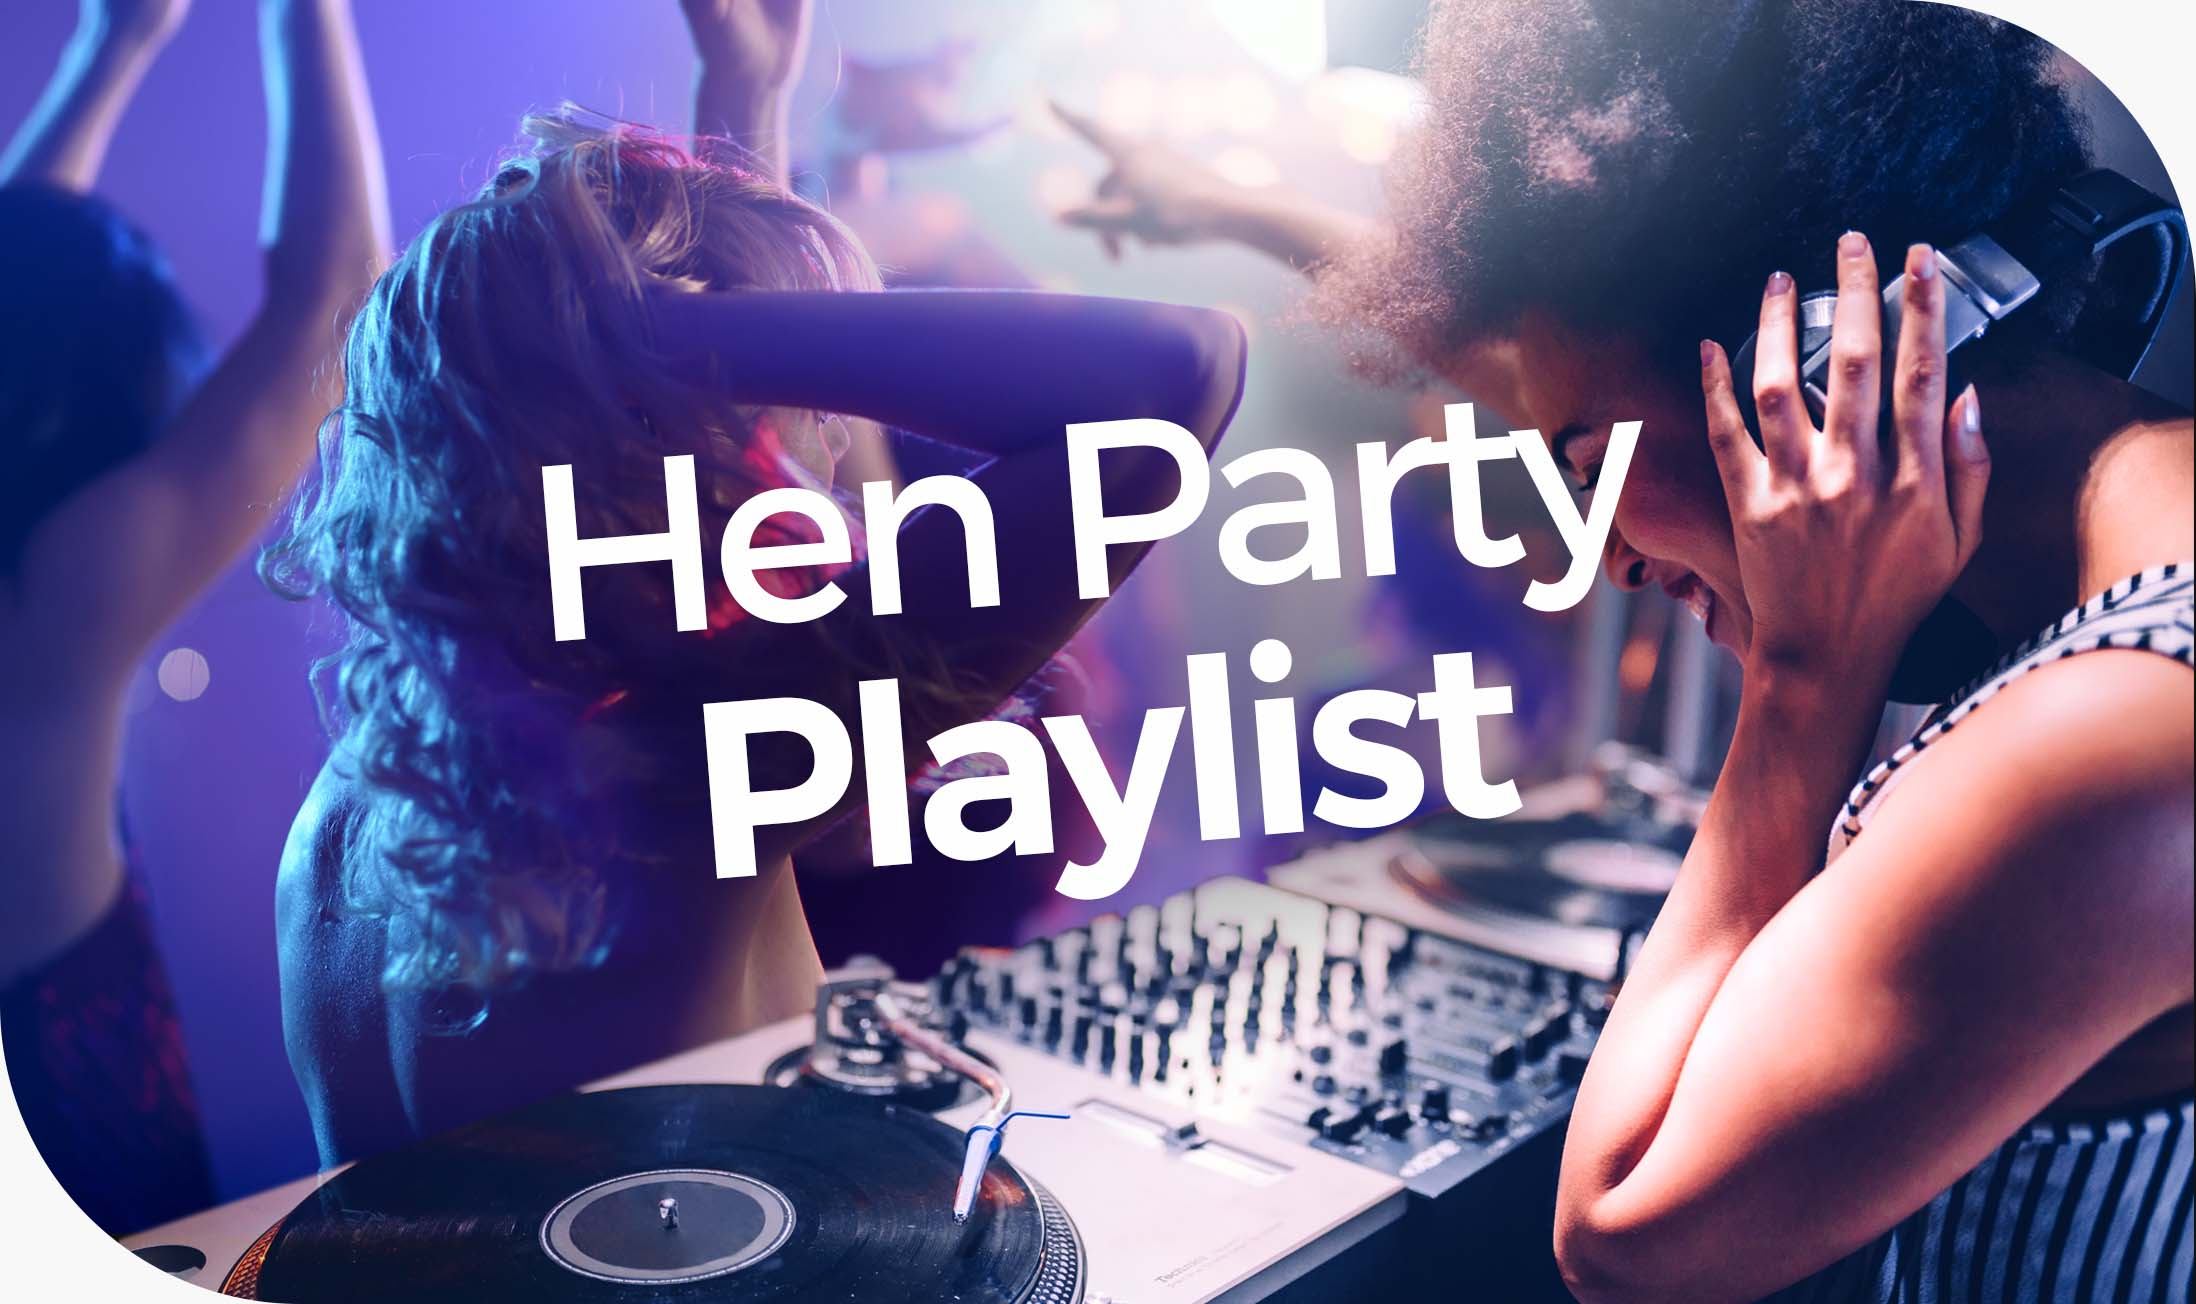 Hen Party Playlist